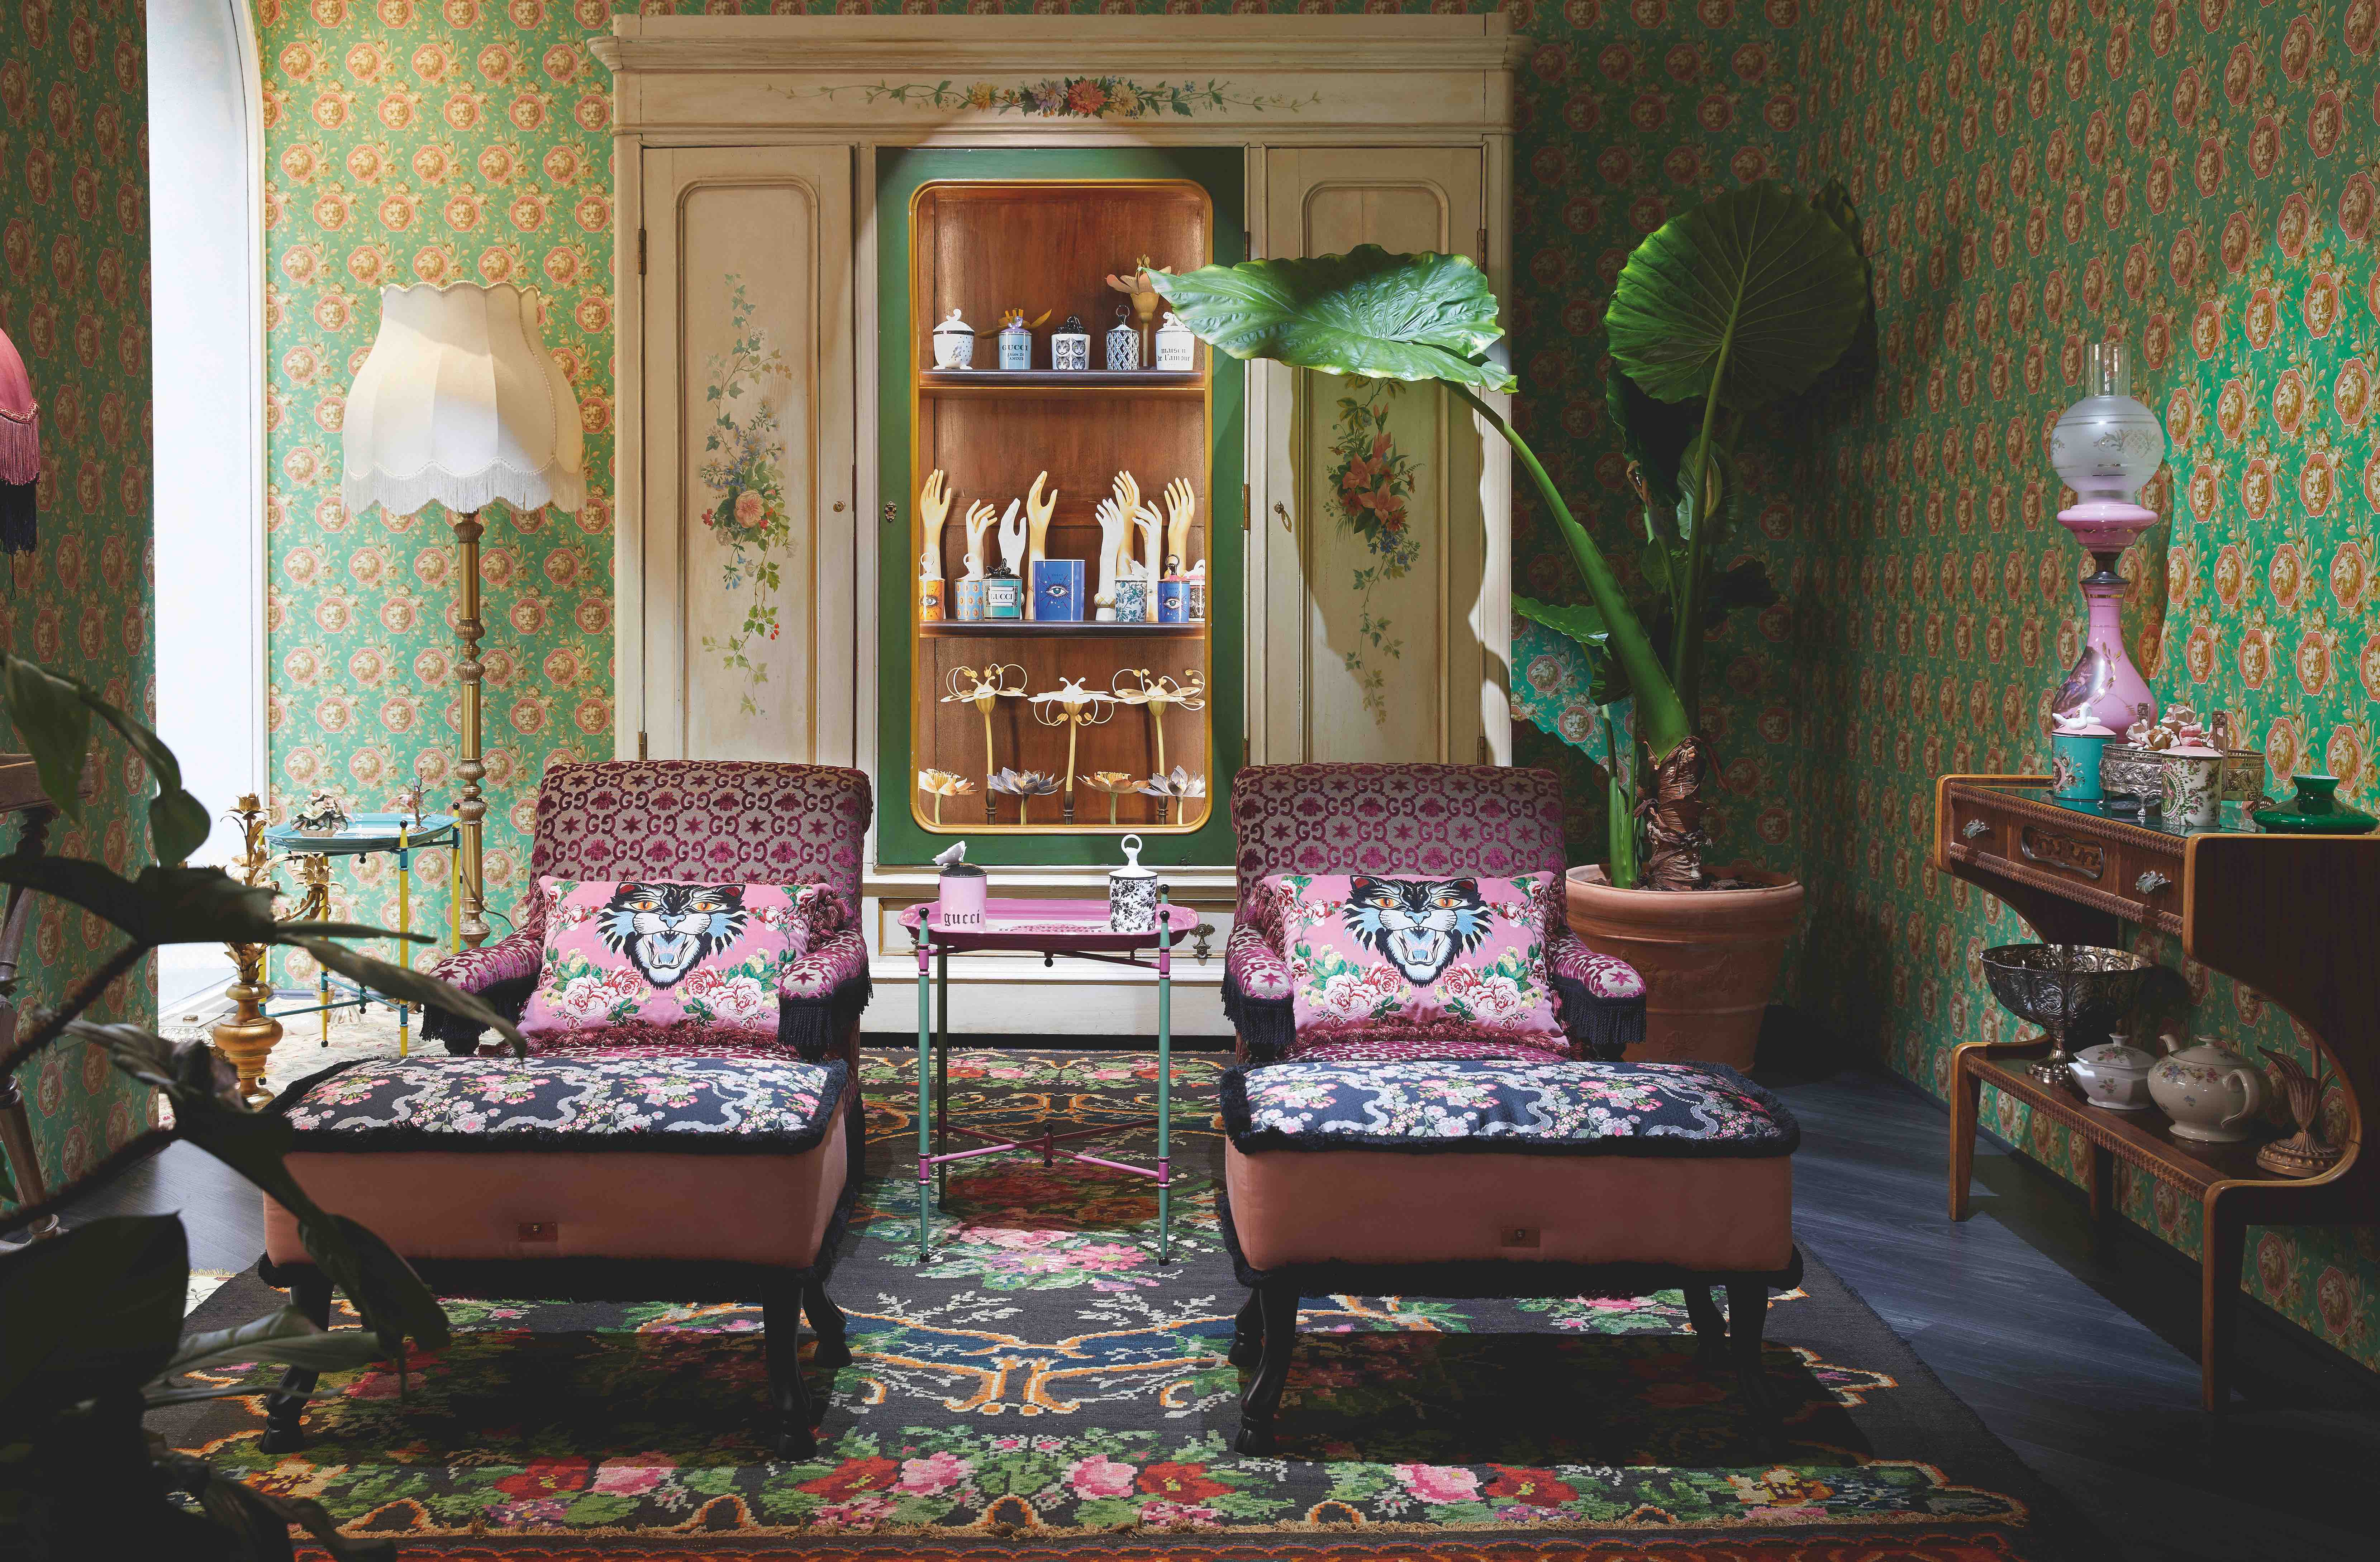 Gucci homeware pop-up Milan Design week chairs